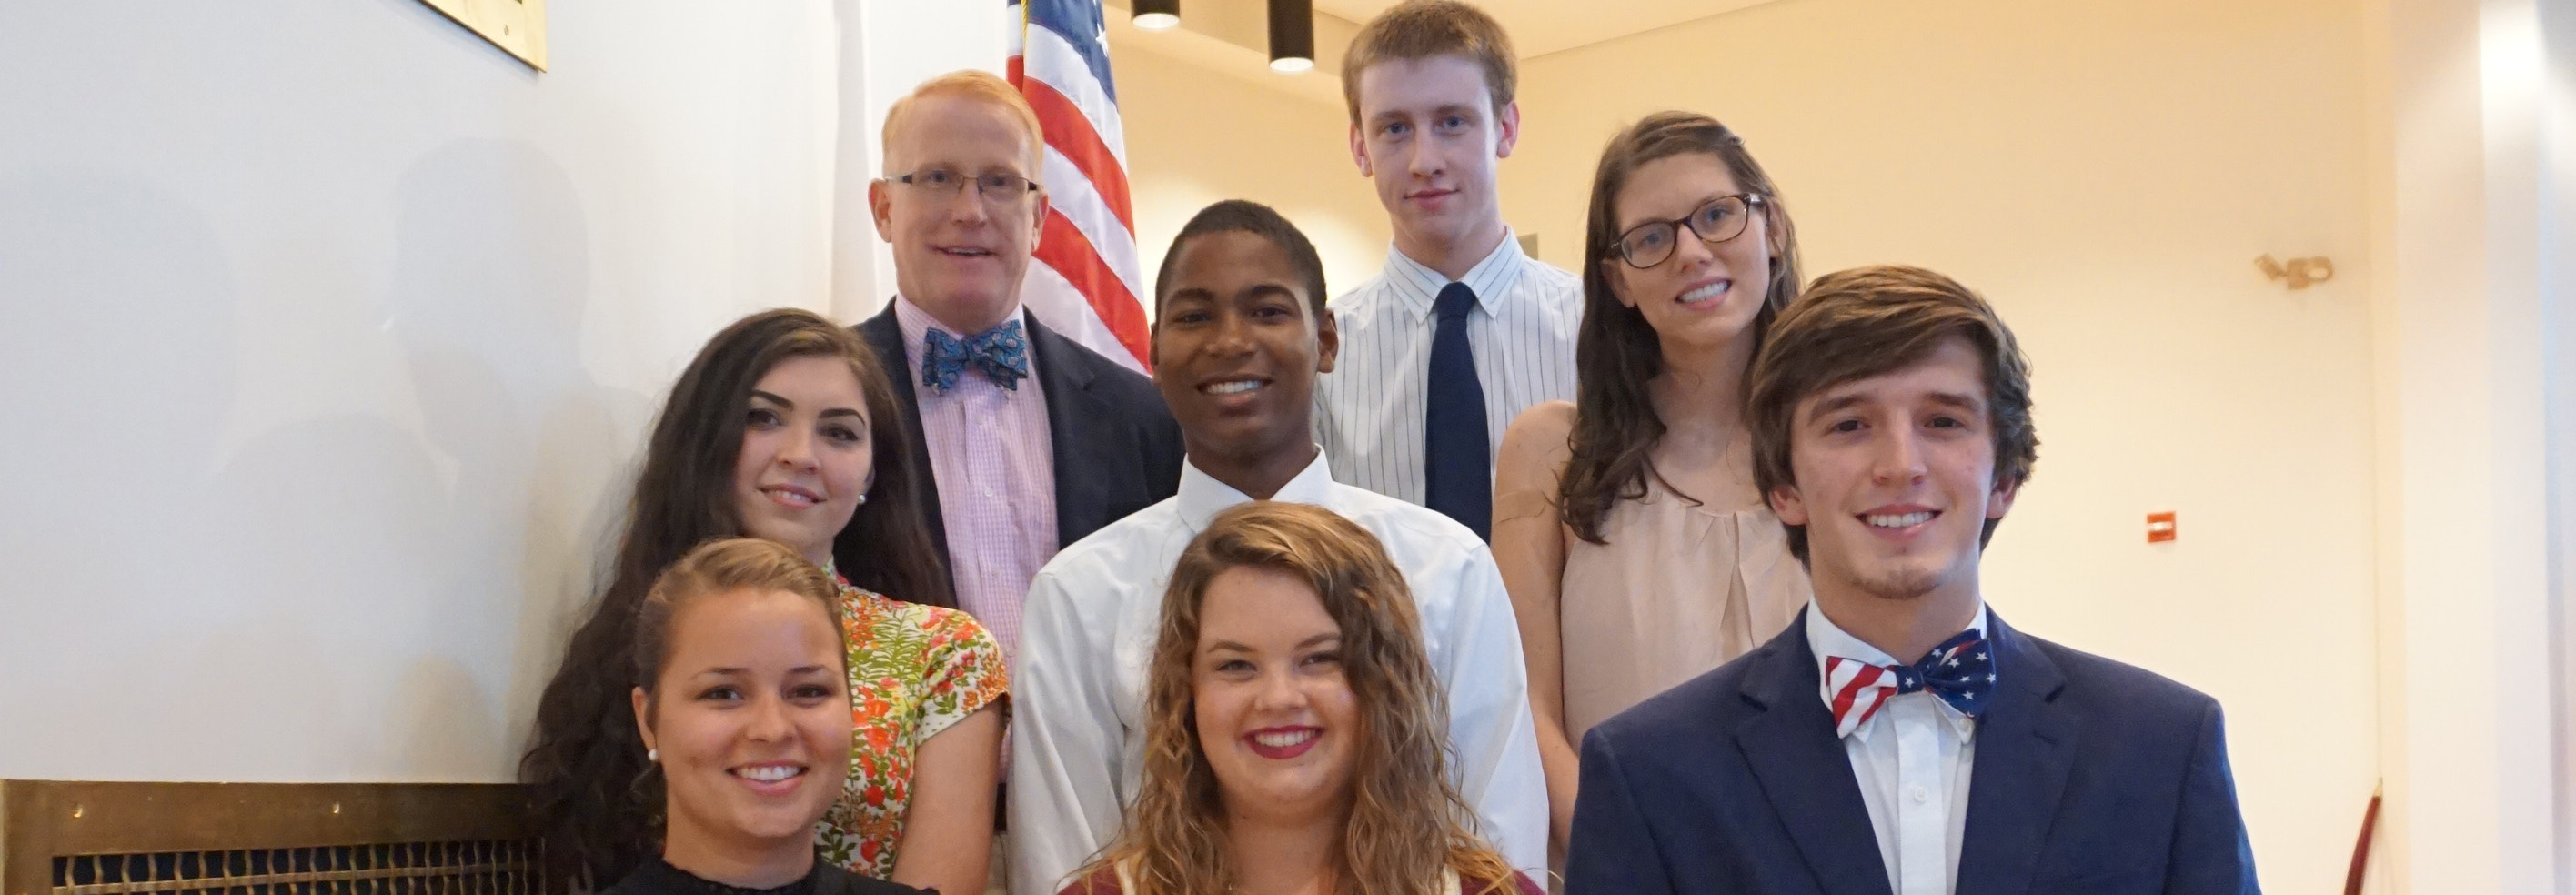 Meet the School Board's Student Delegates